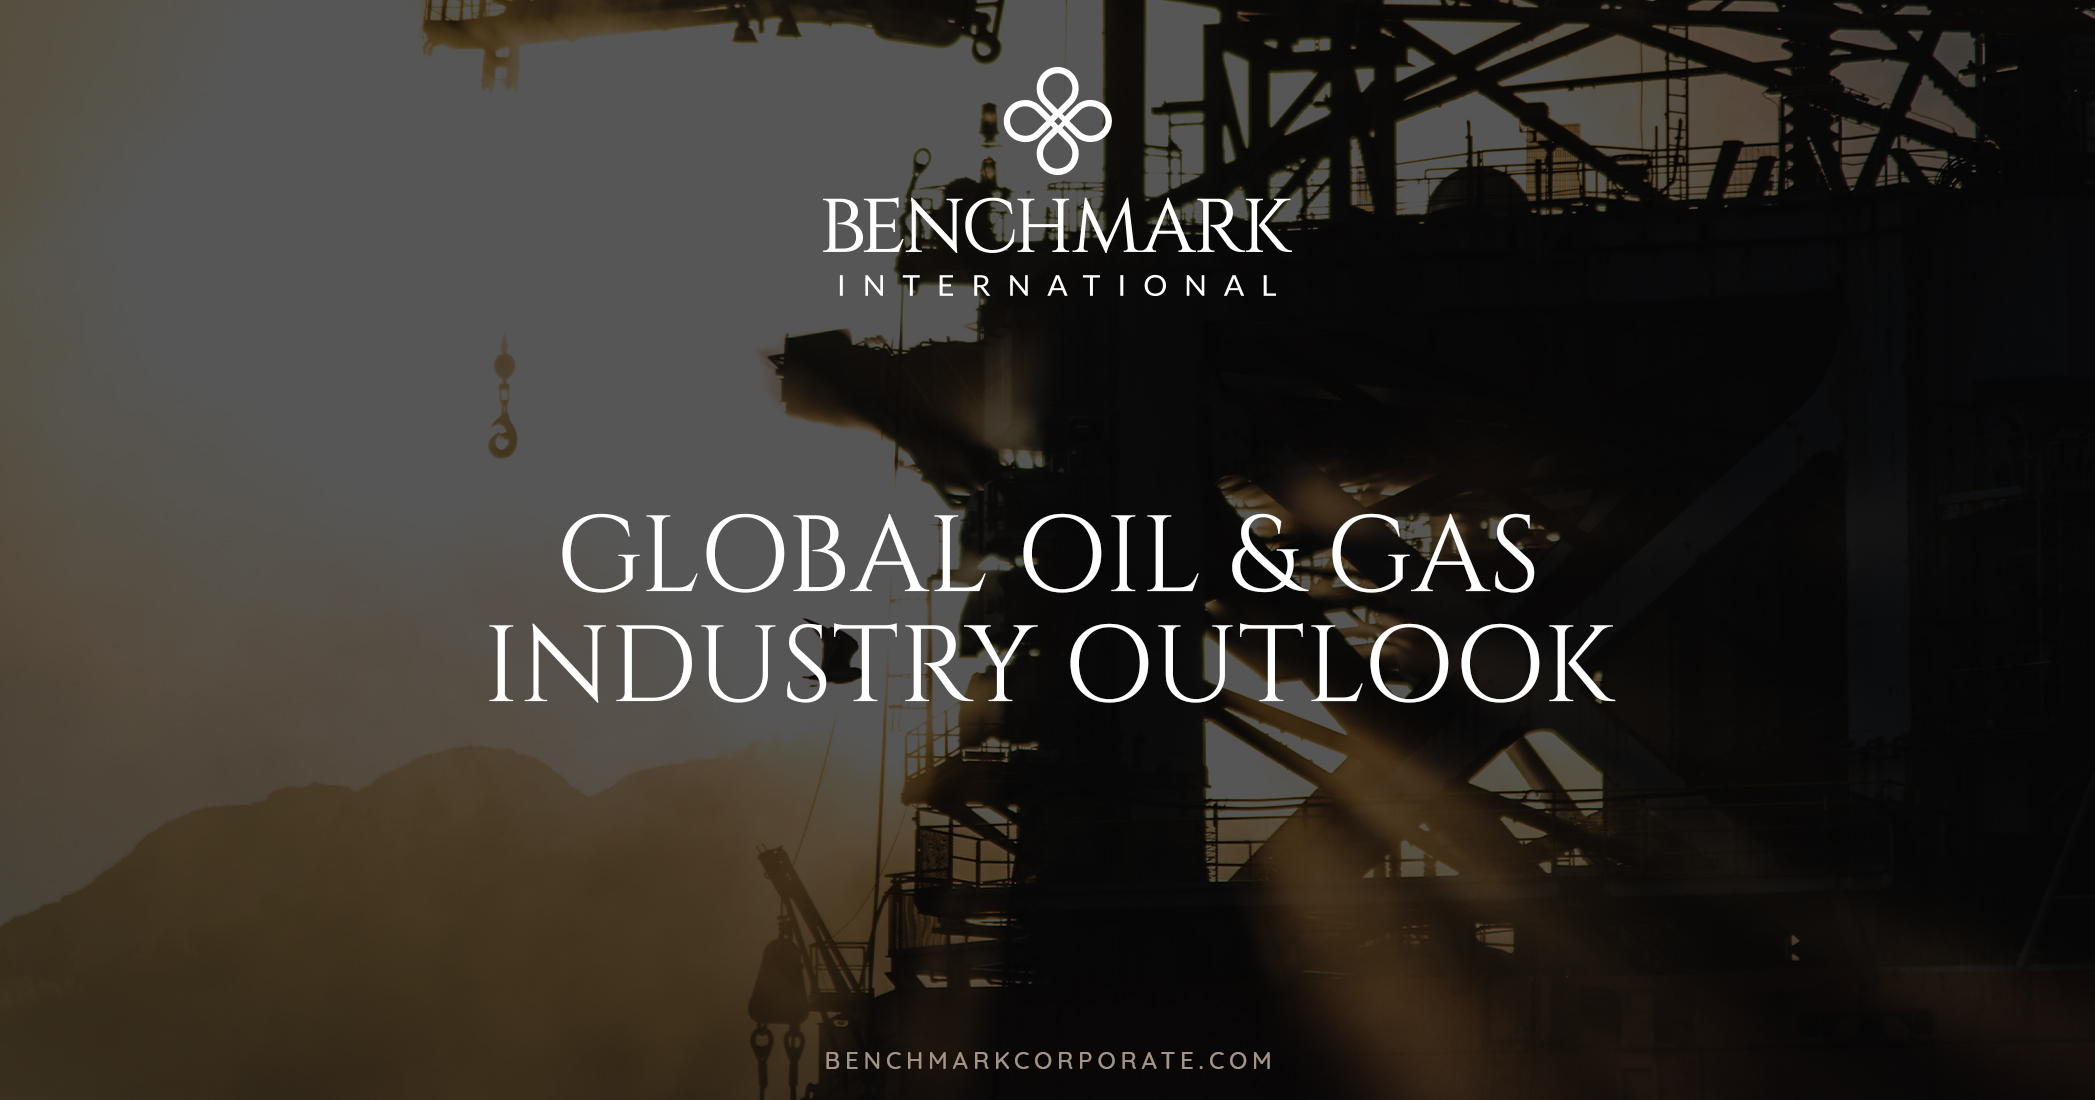 Global Oil & Gas Industry Outlook